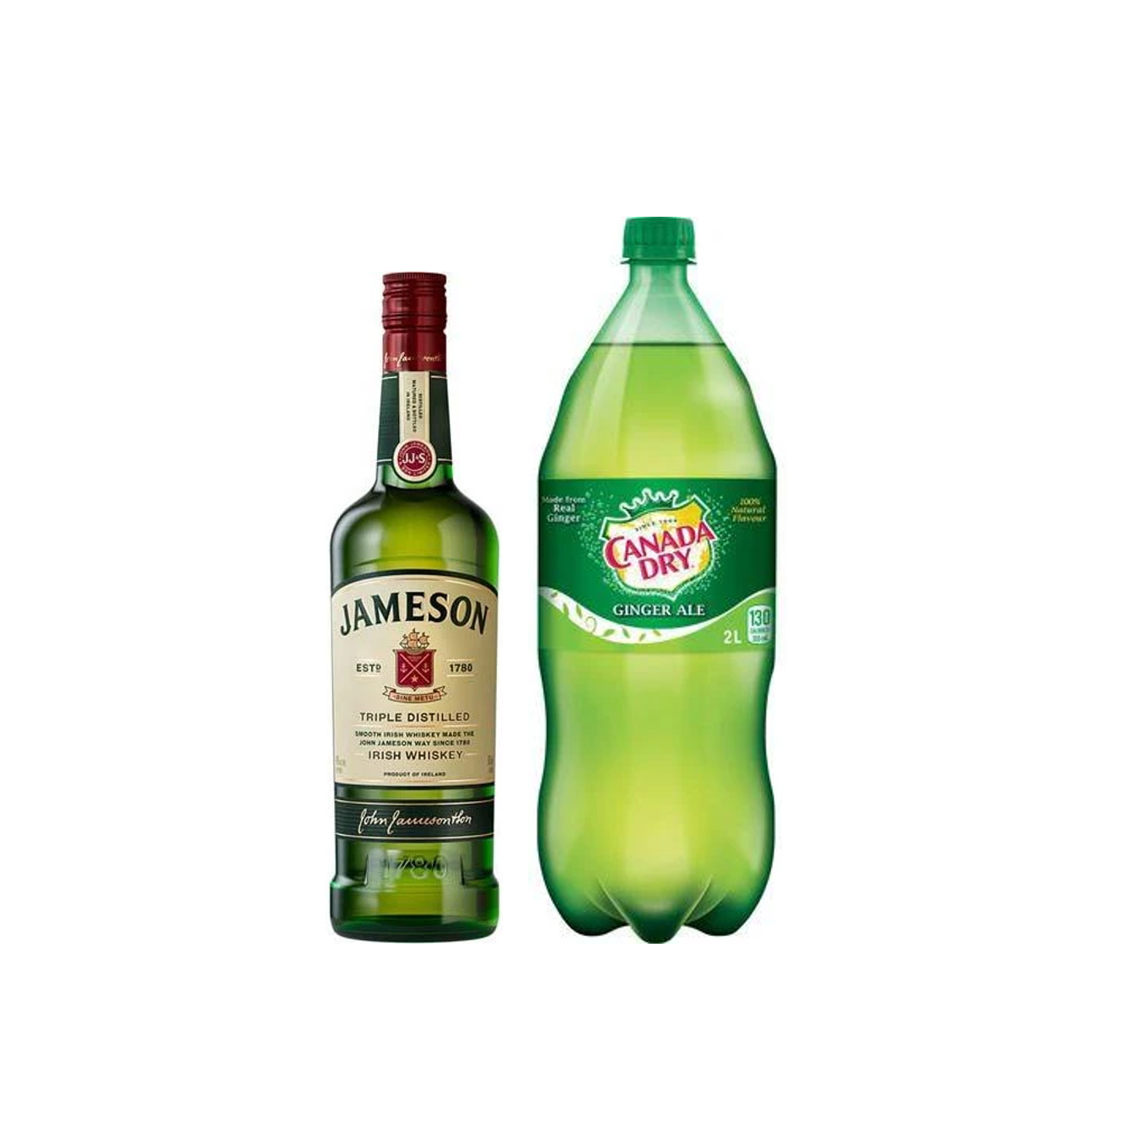 Jameson & Ginger Bundle